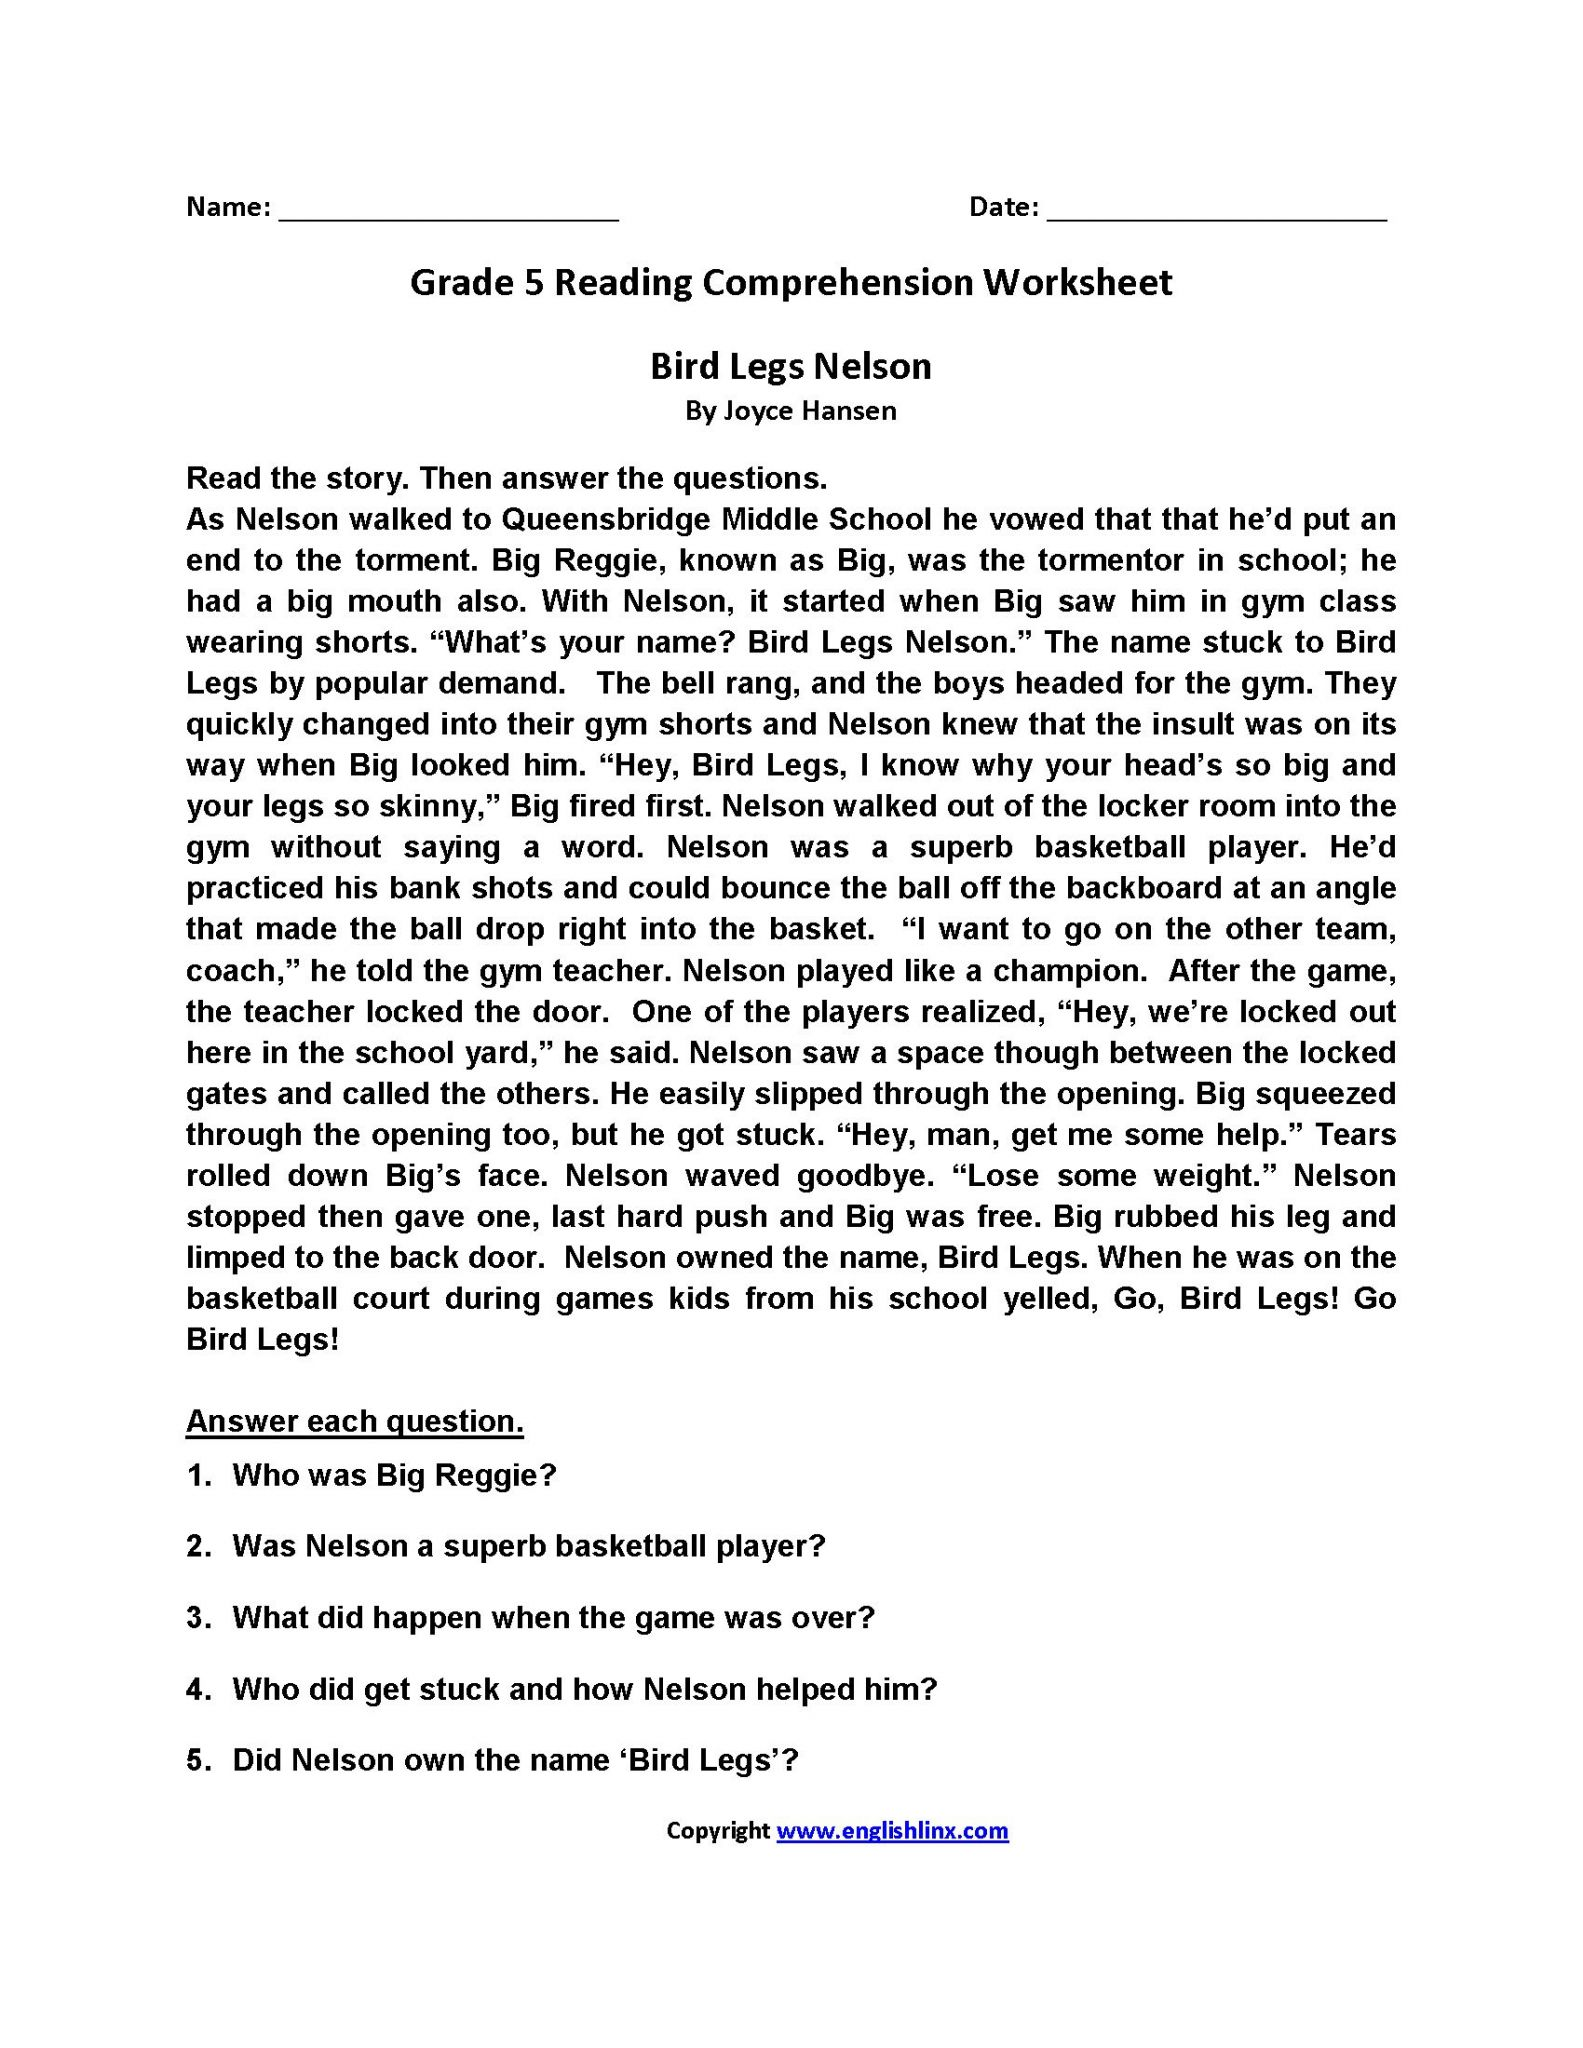 Comprehension Worksheets For Grade 5 Icse